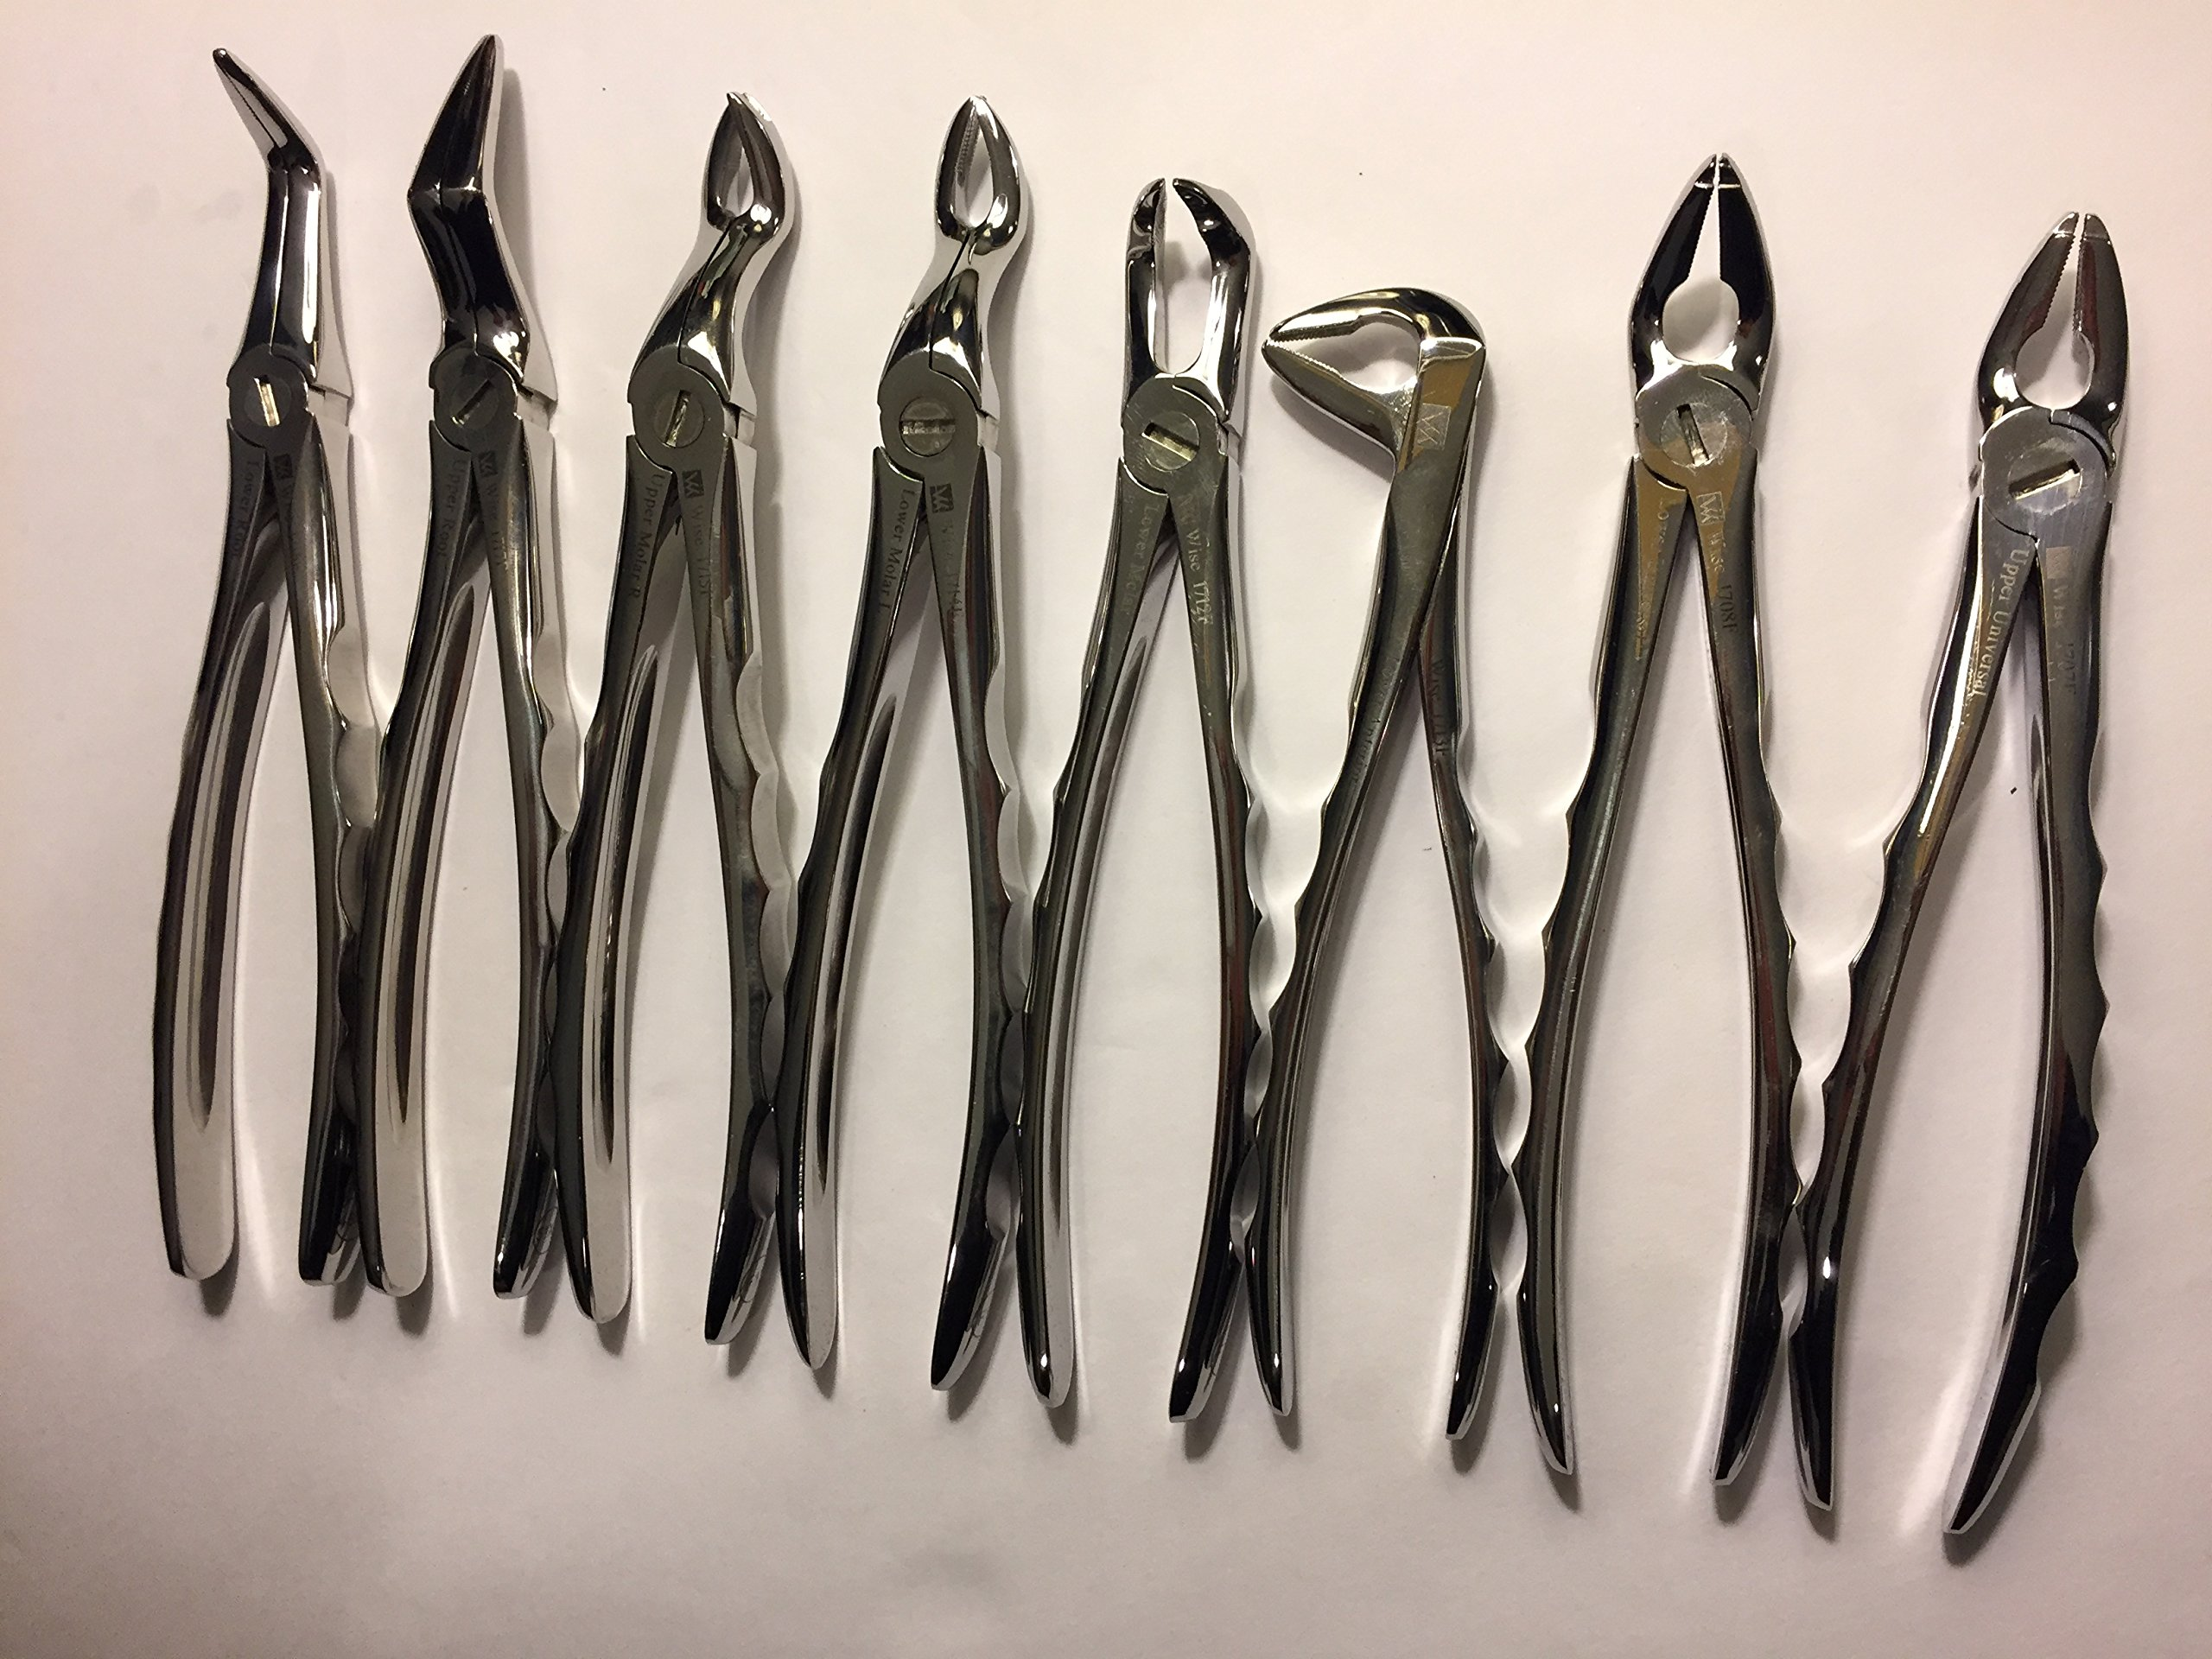 Dental-Surgical Extracting Extraction Forceps Set of 8